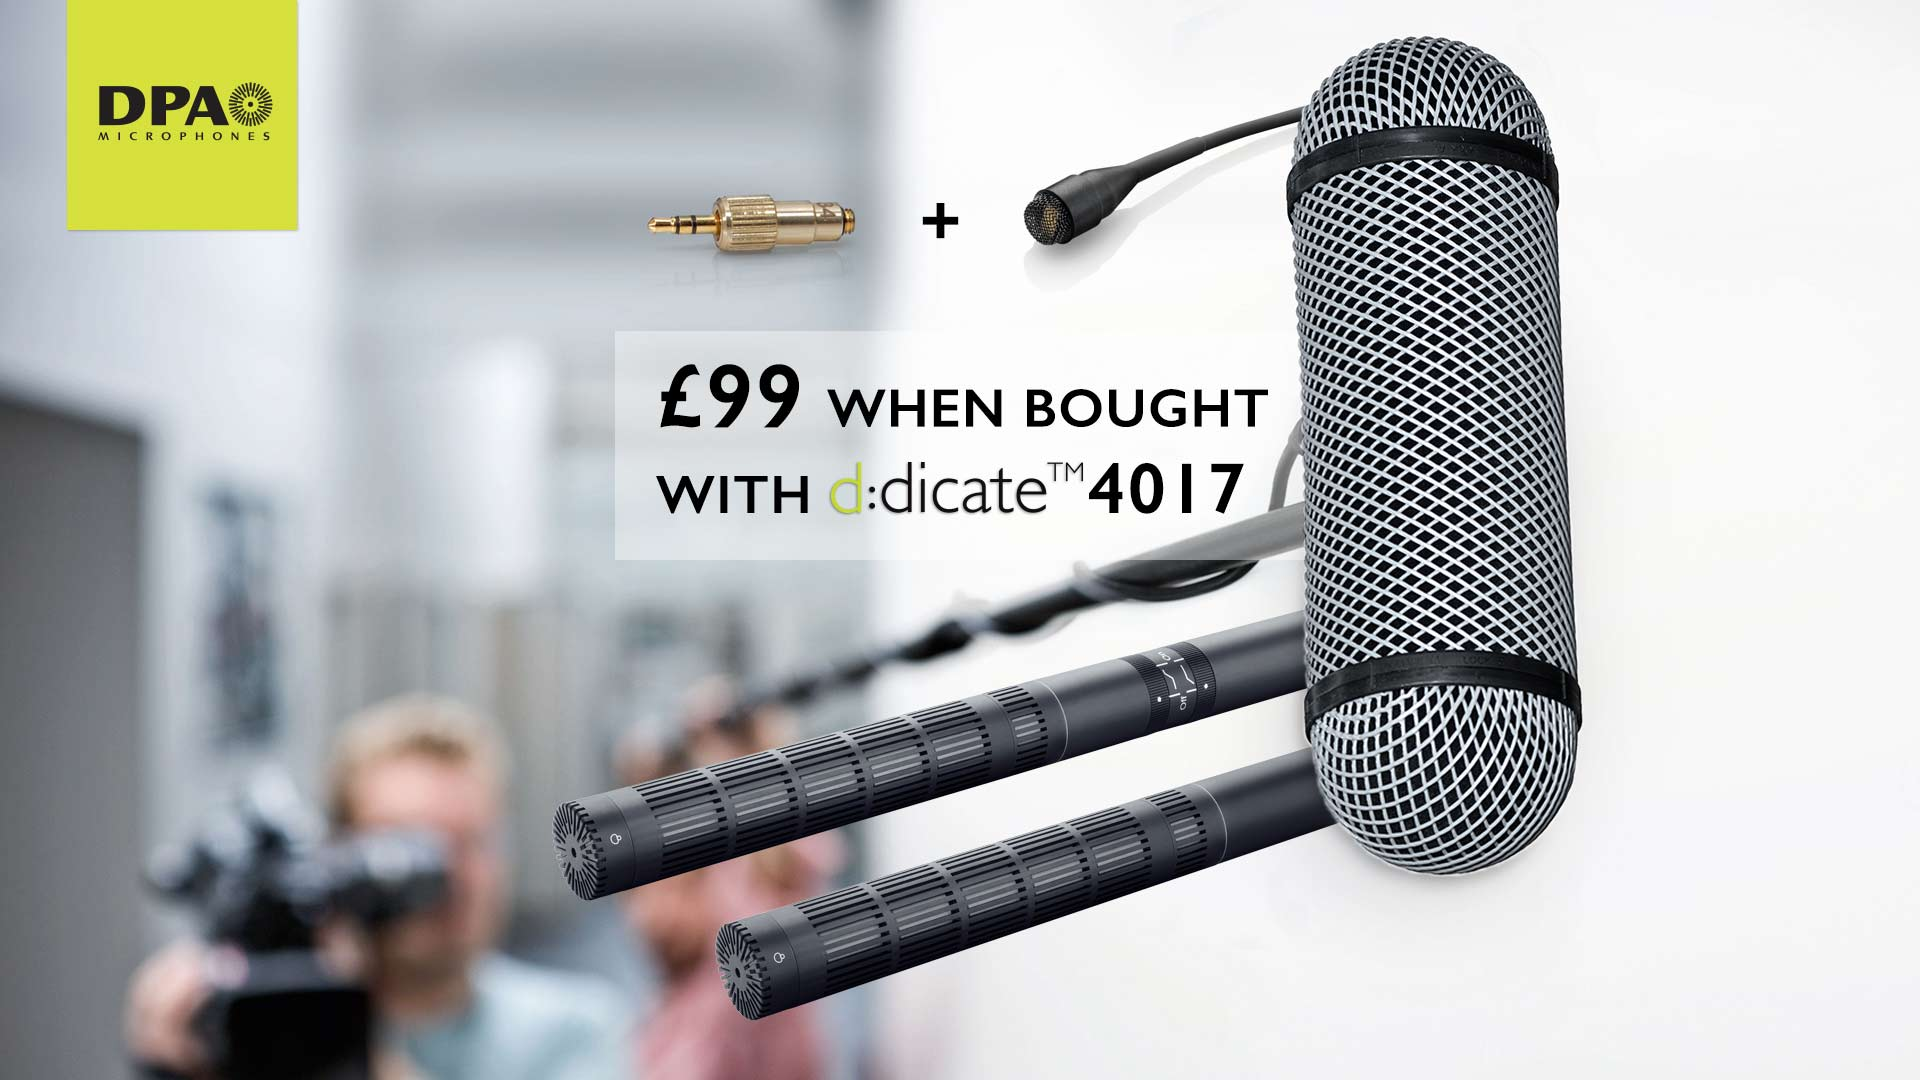 DPA 4060 and adapter just £99 with d:dicate™ 4017